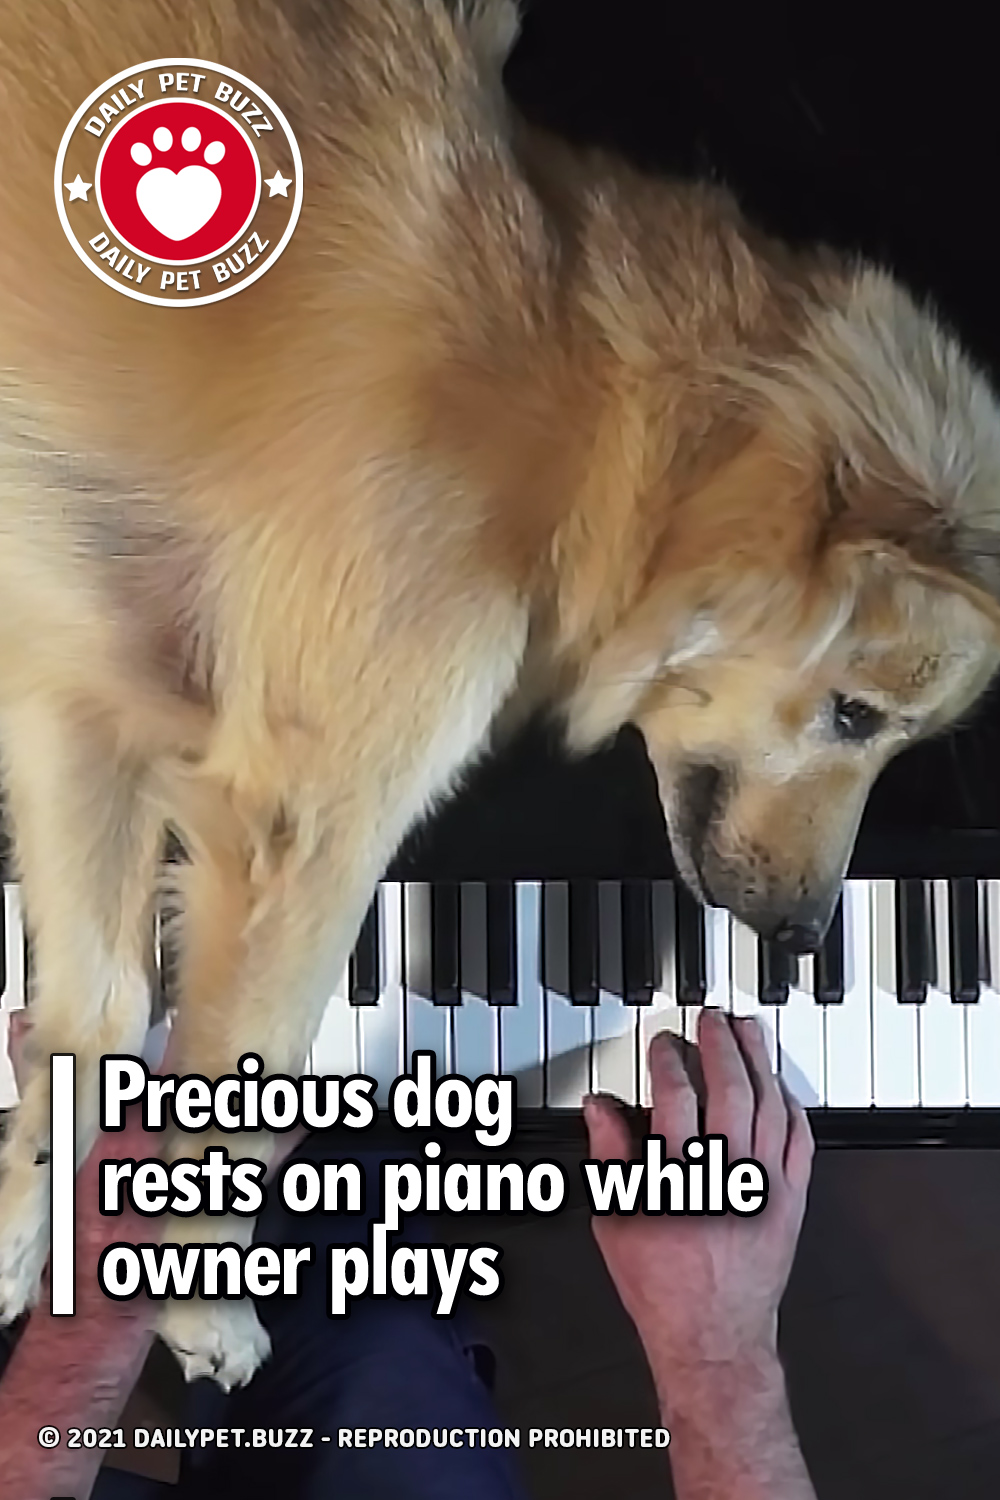 Precious dog rests on piano while owner plays